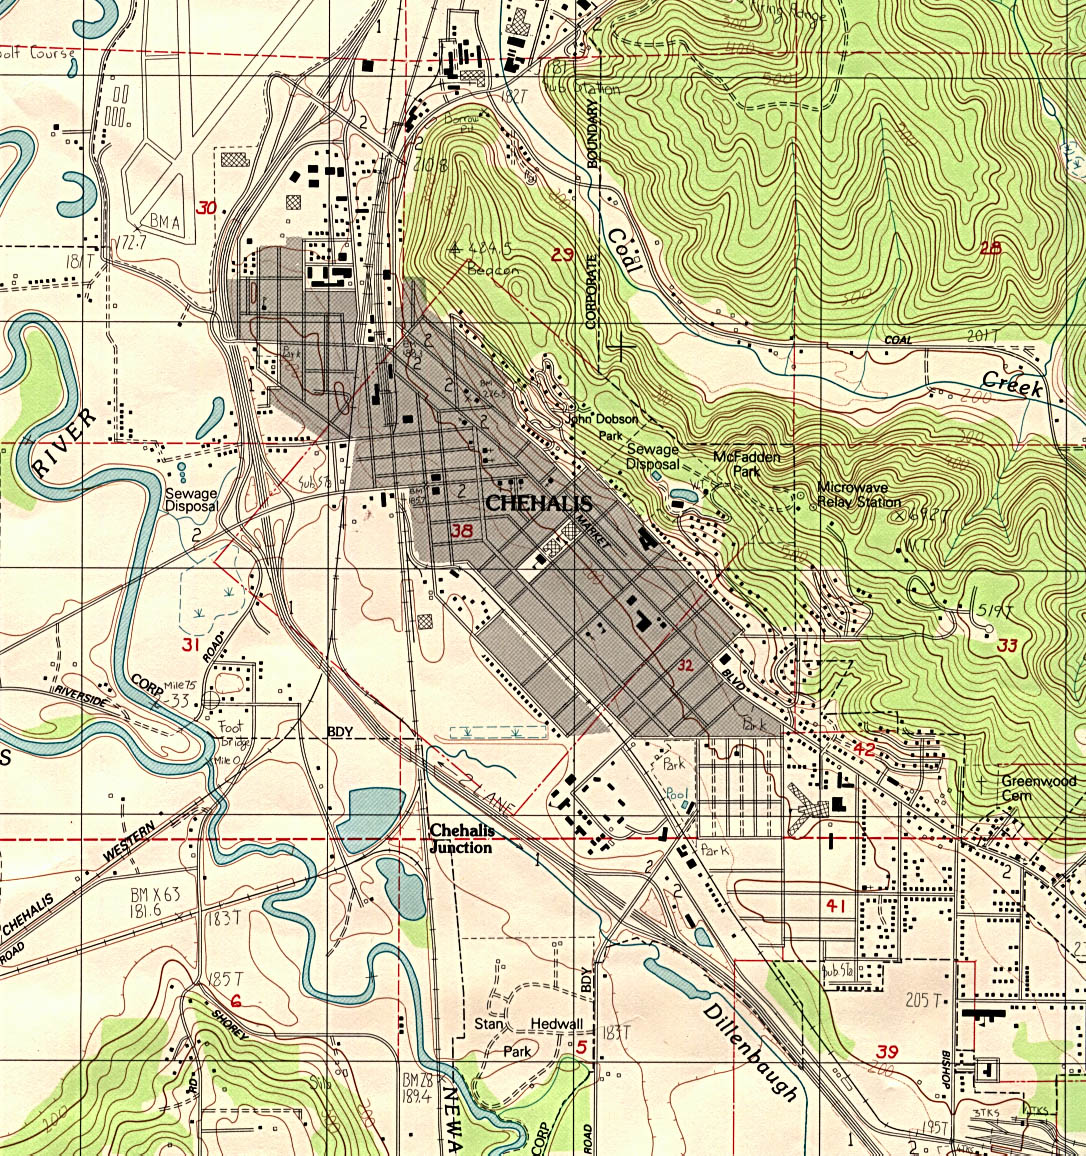 Chehalis (WA) United States  City pictures : ... State Map With Major Cities. on map of united states with highways